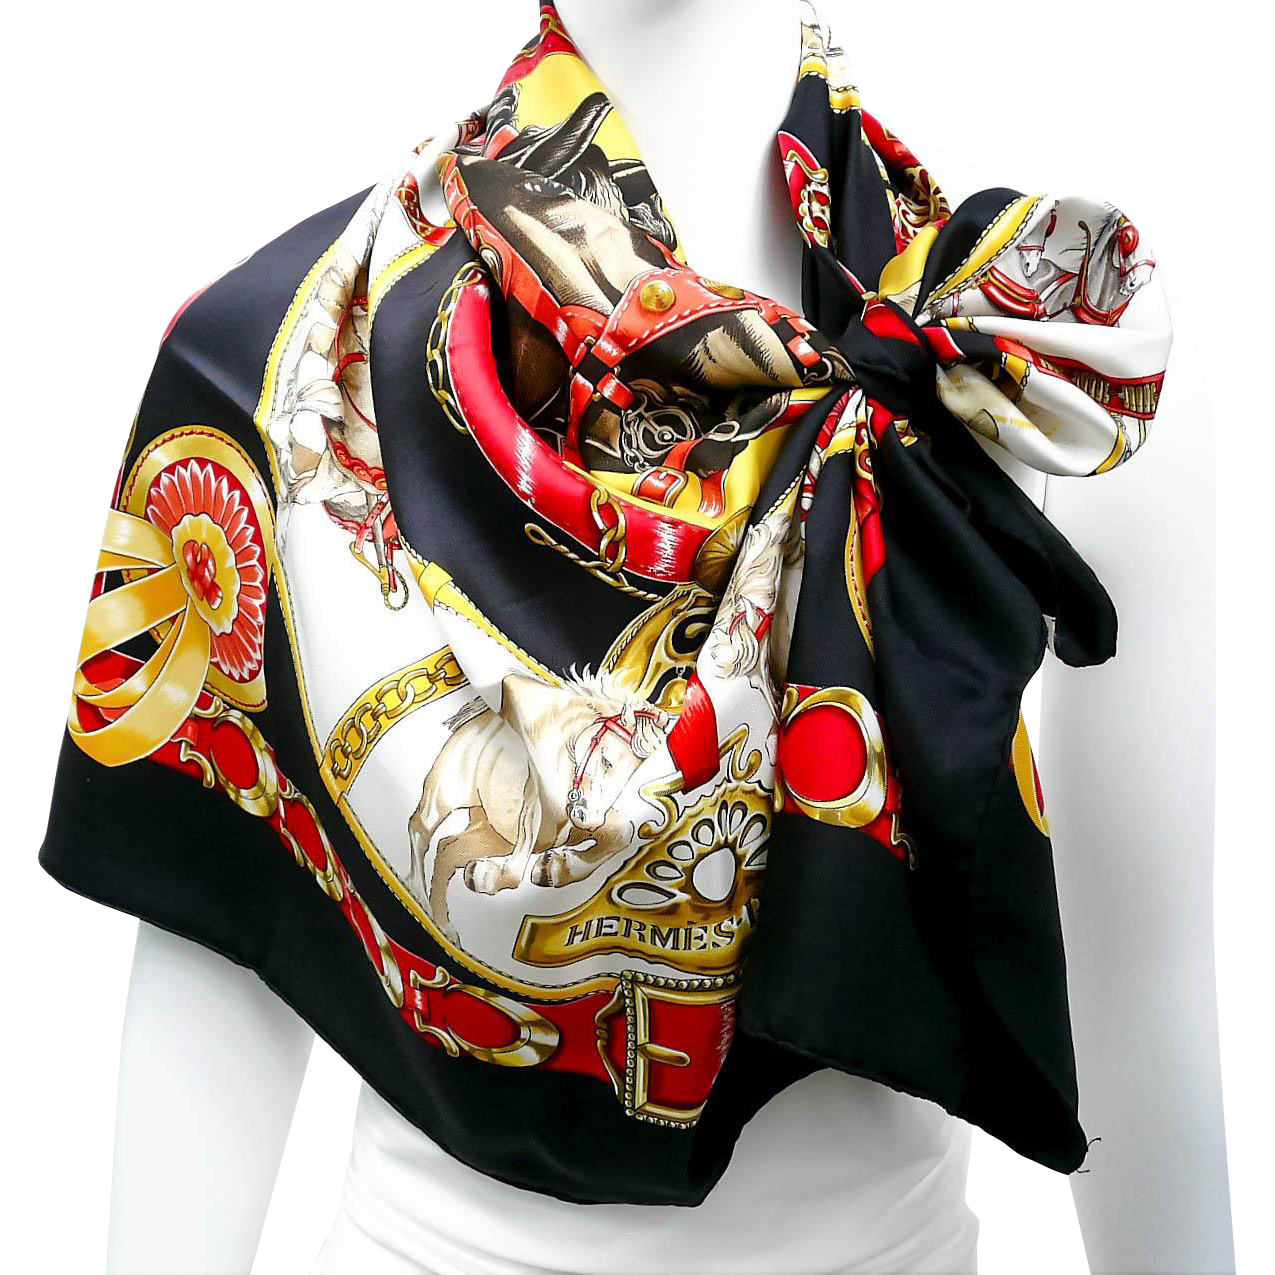 sale authentic vintage hermes silk scarf chevaux de trait